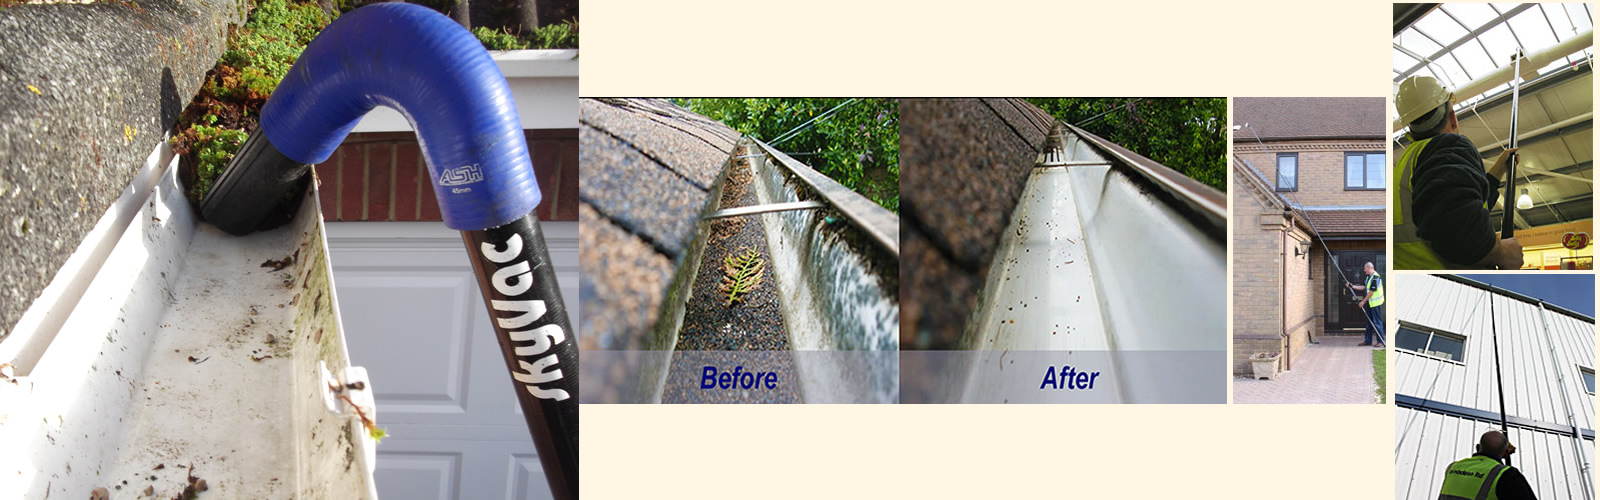 Fairways Gutter Cleaning Services Solihull Warwick